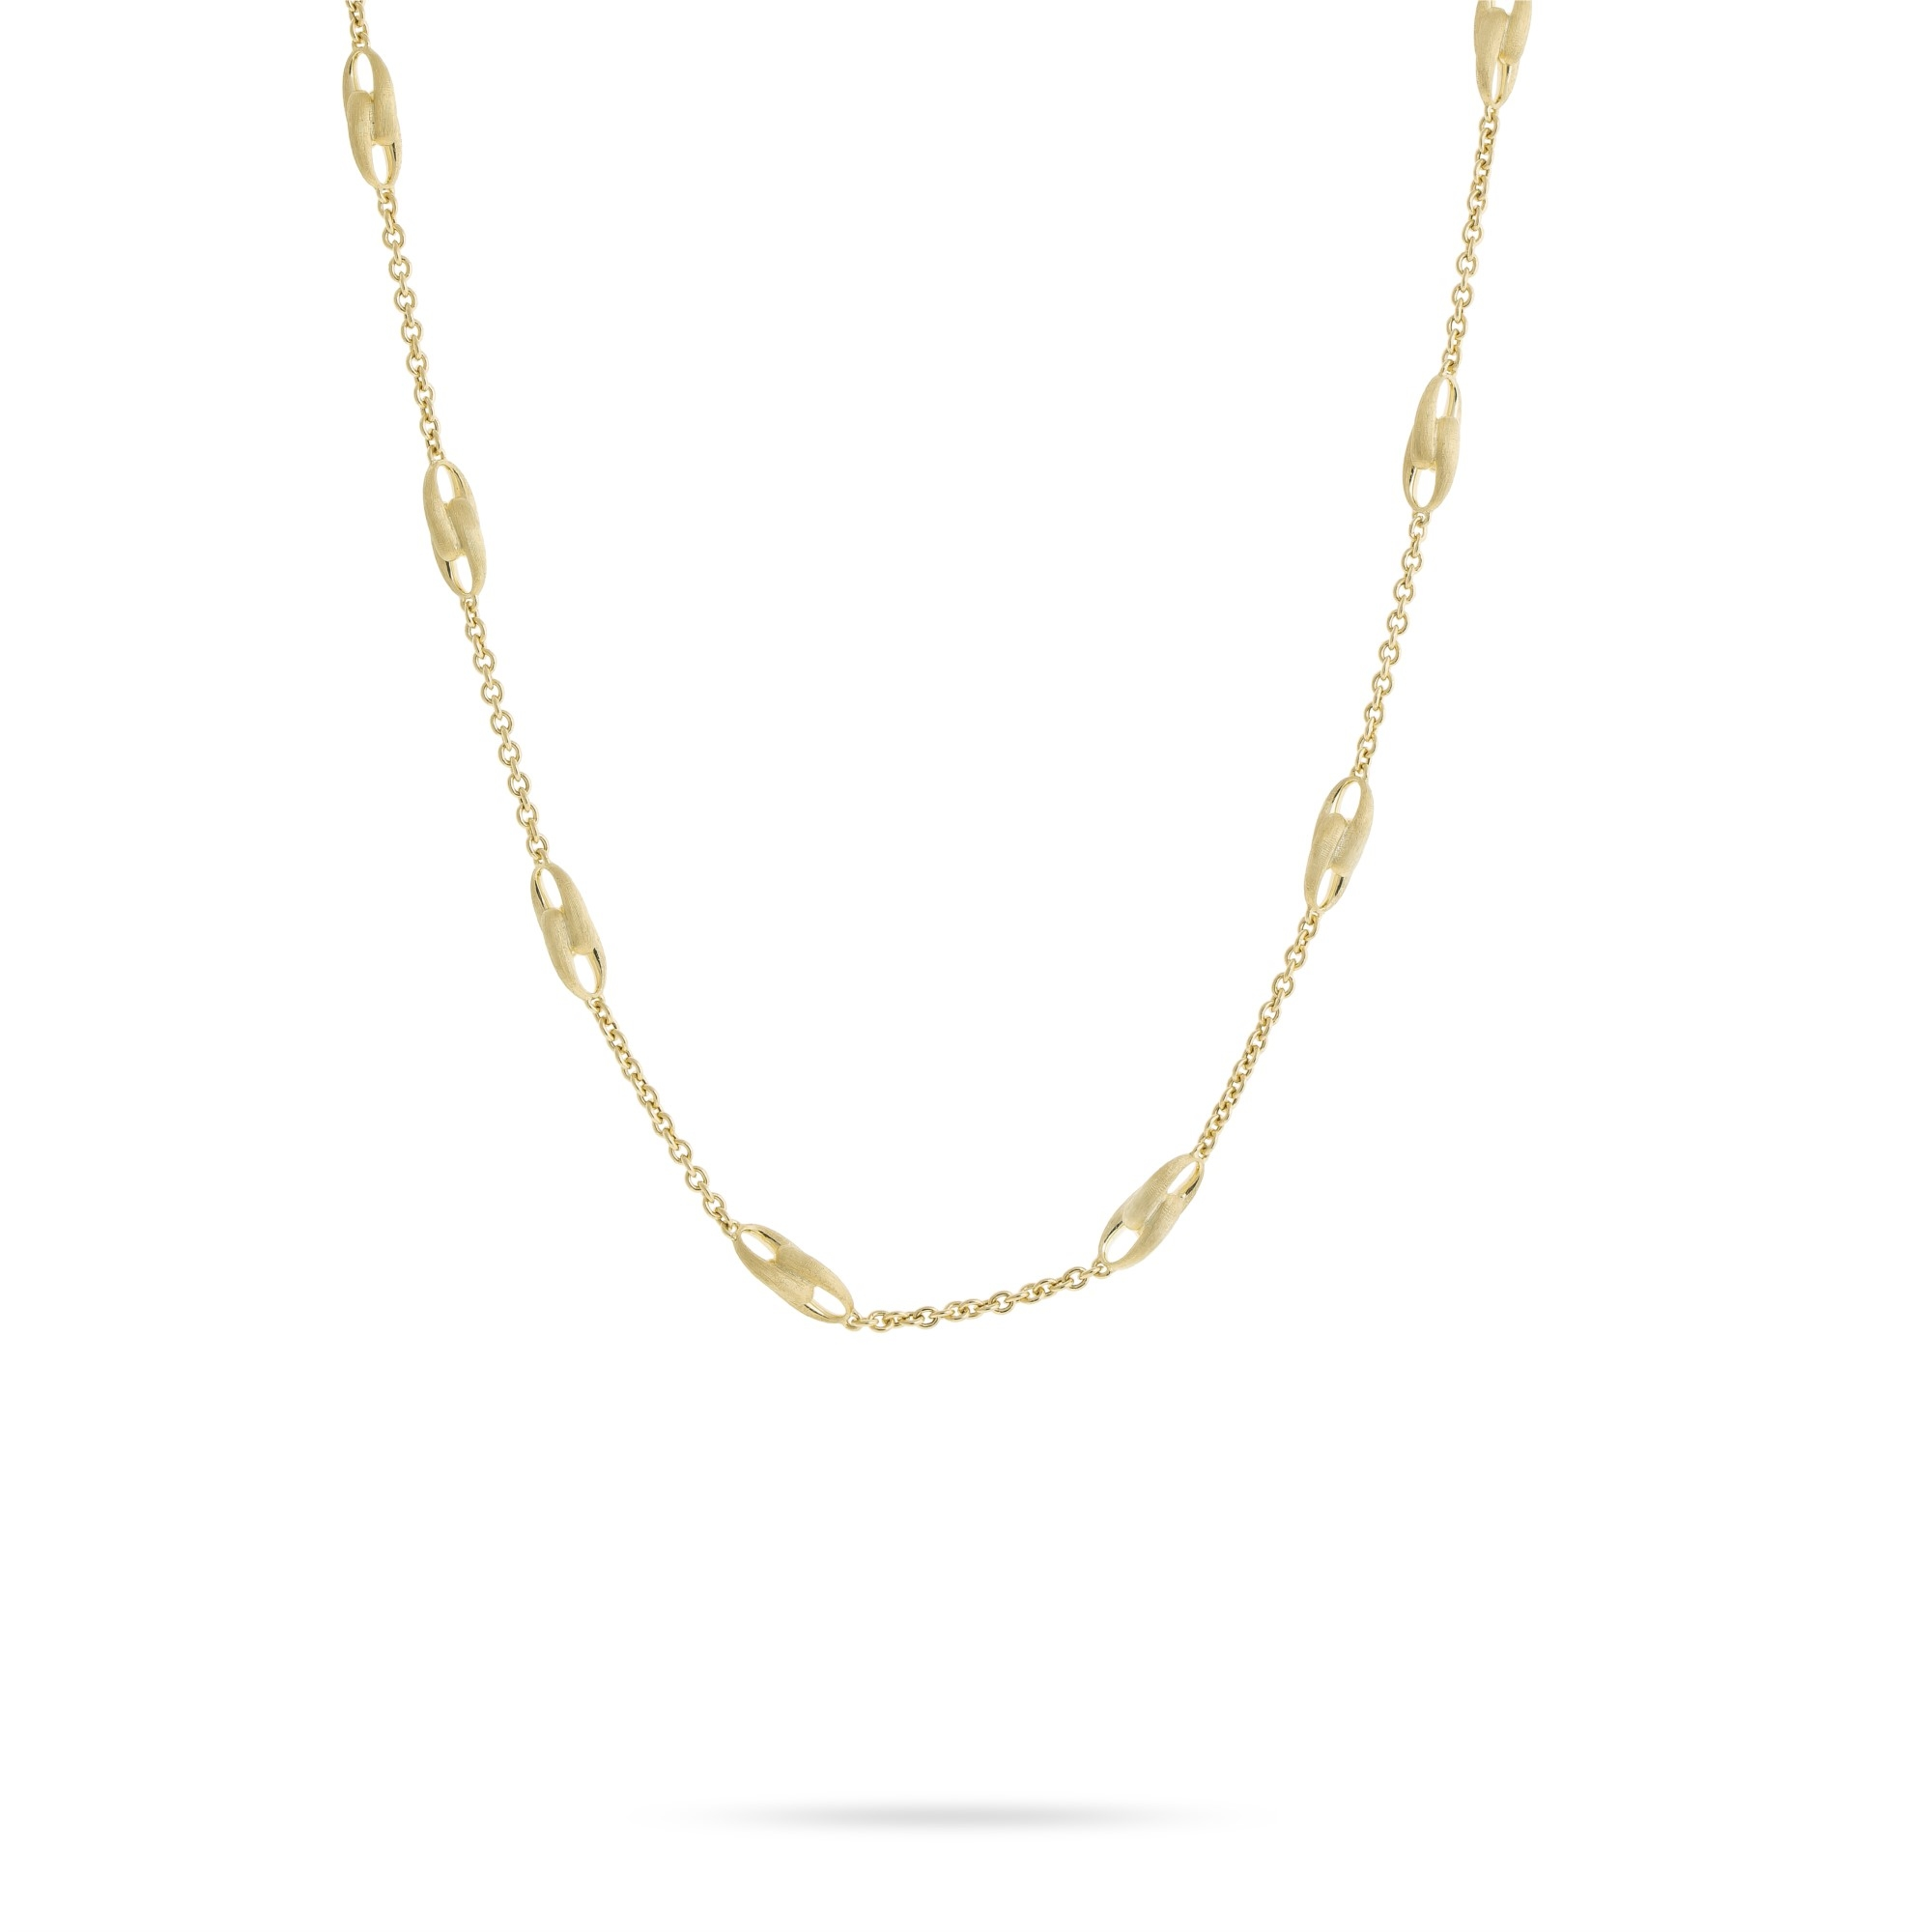 Marco Bicego 18K Yellow Gold    Gold Necklace CB2363 Y